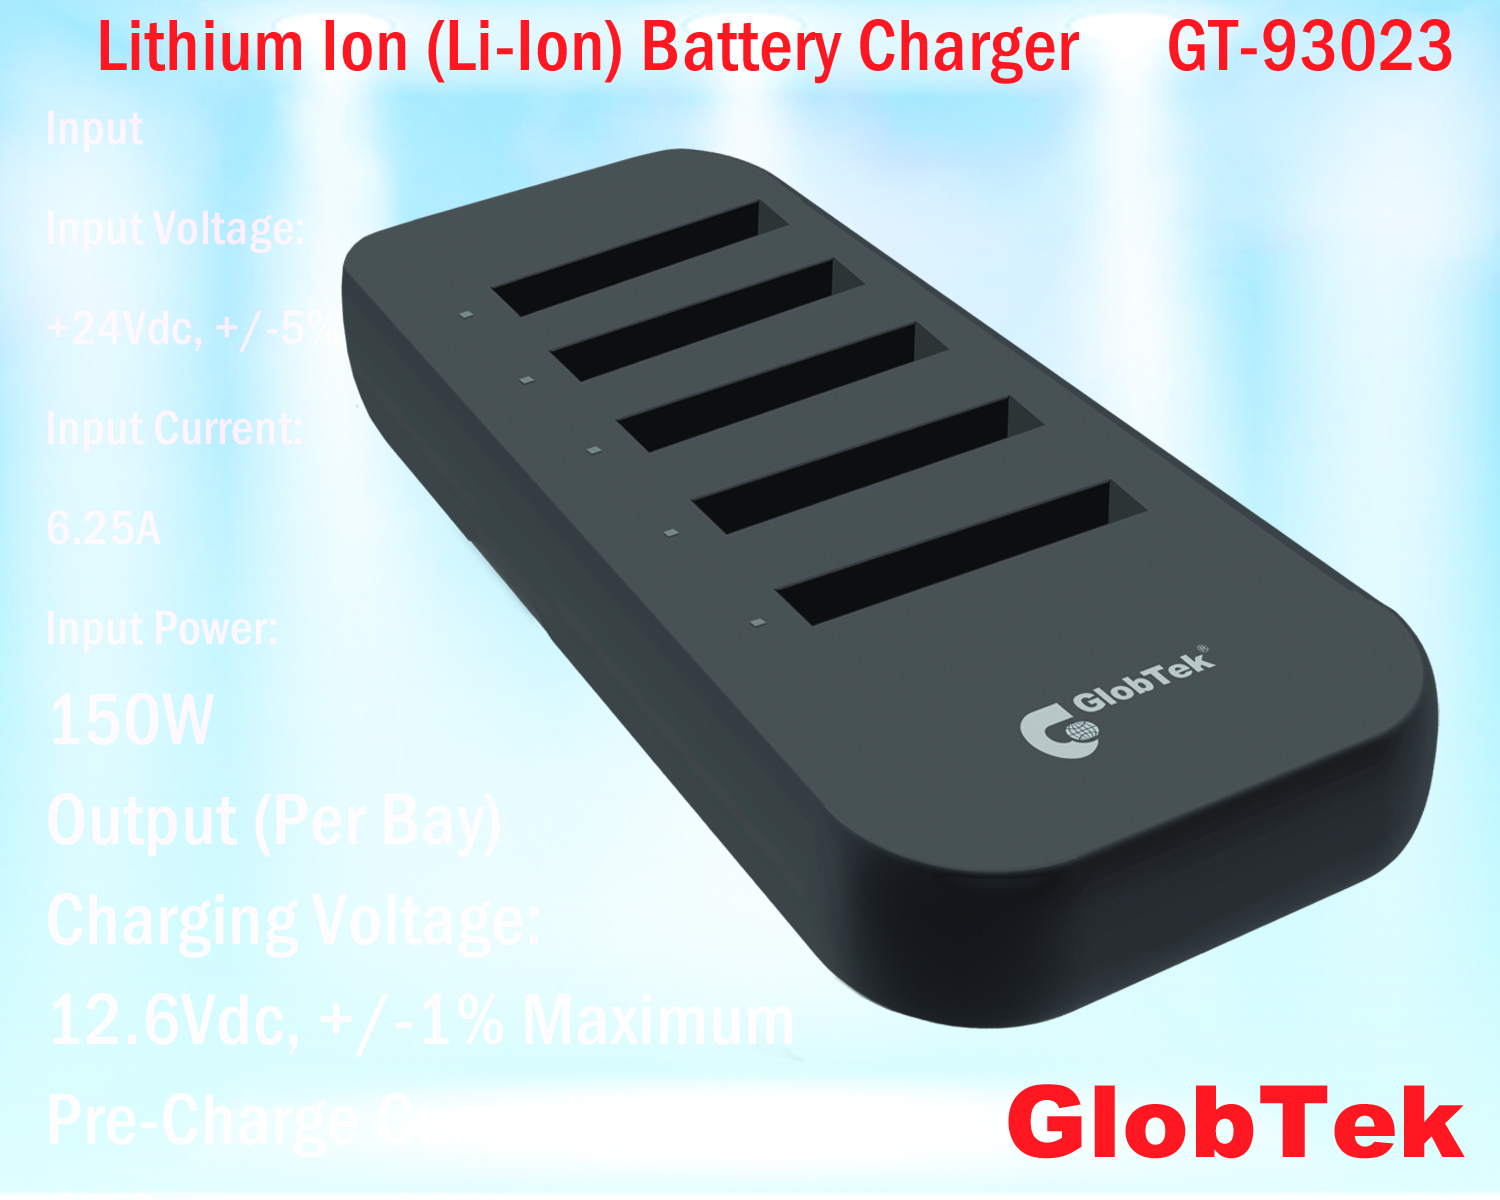 Lithium Ion (Li-Ion) Battery charger latest designs from GlobTek implement multiple redundant safety features to prevent failure and damage to batteries and systems while mitigating risk and lengthening battery life